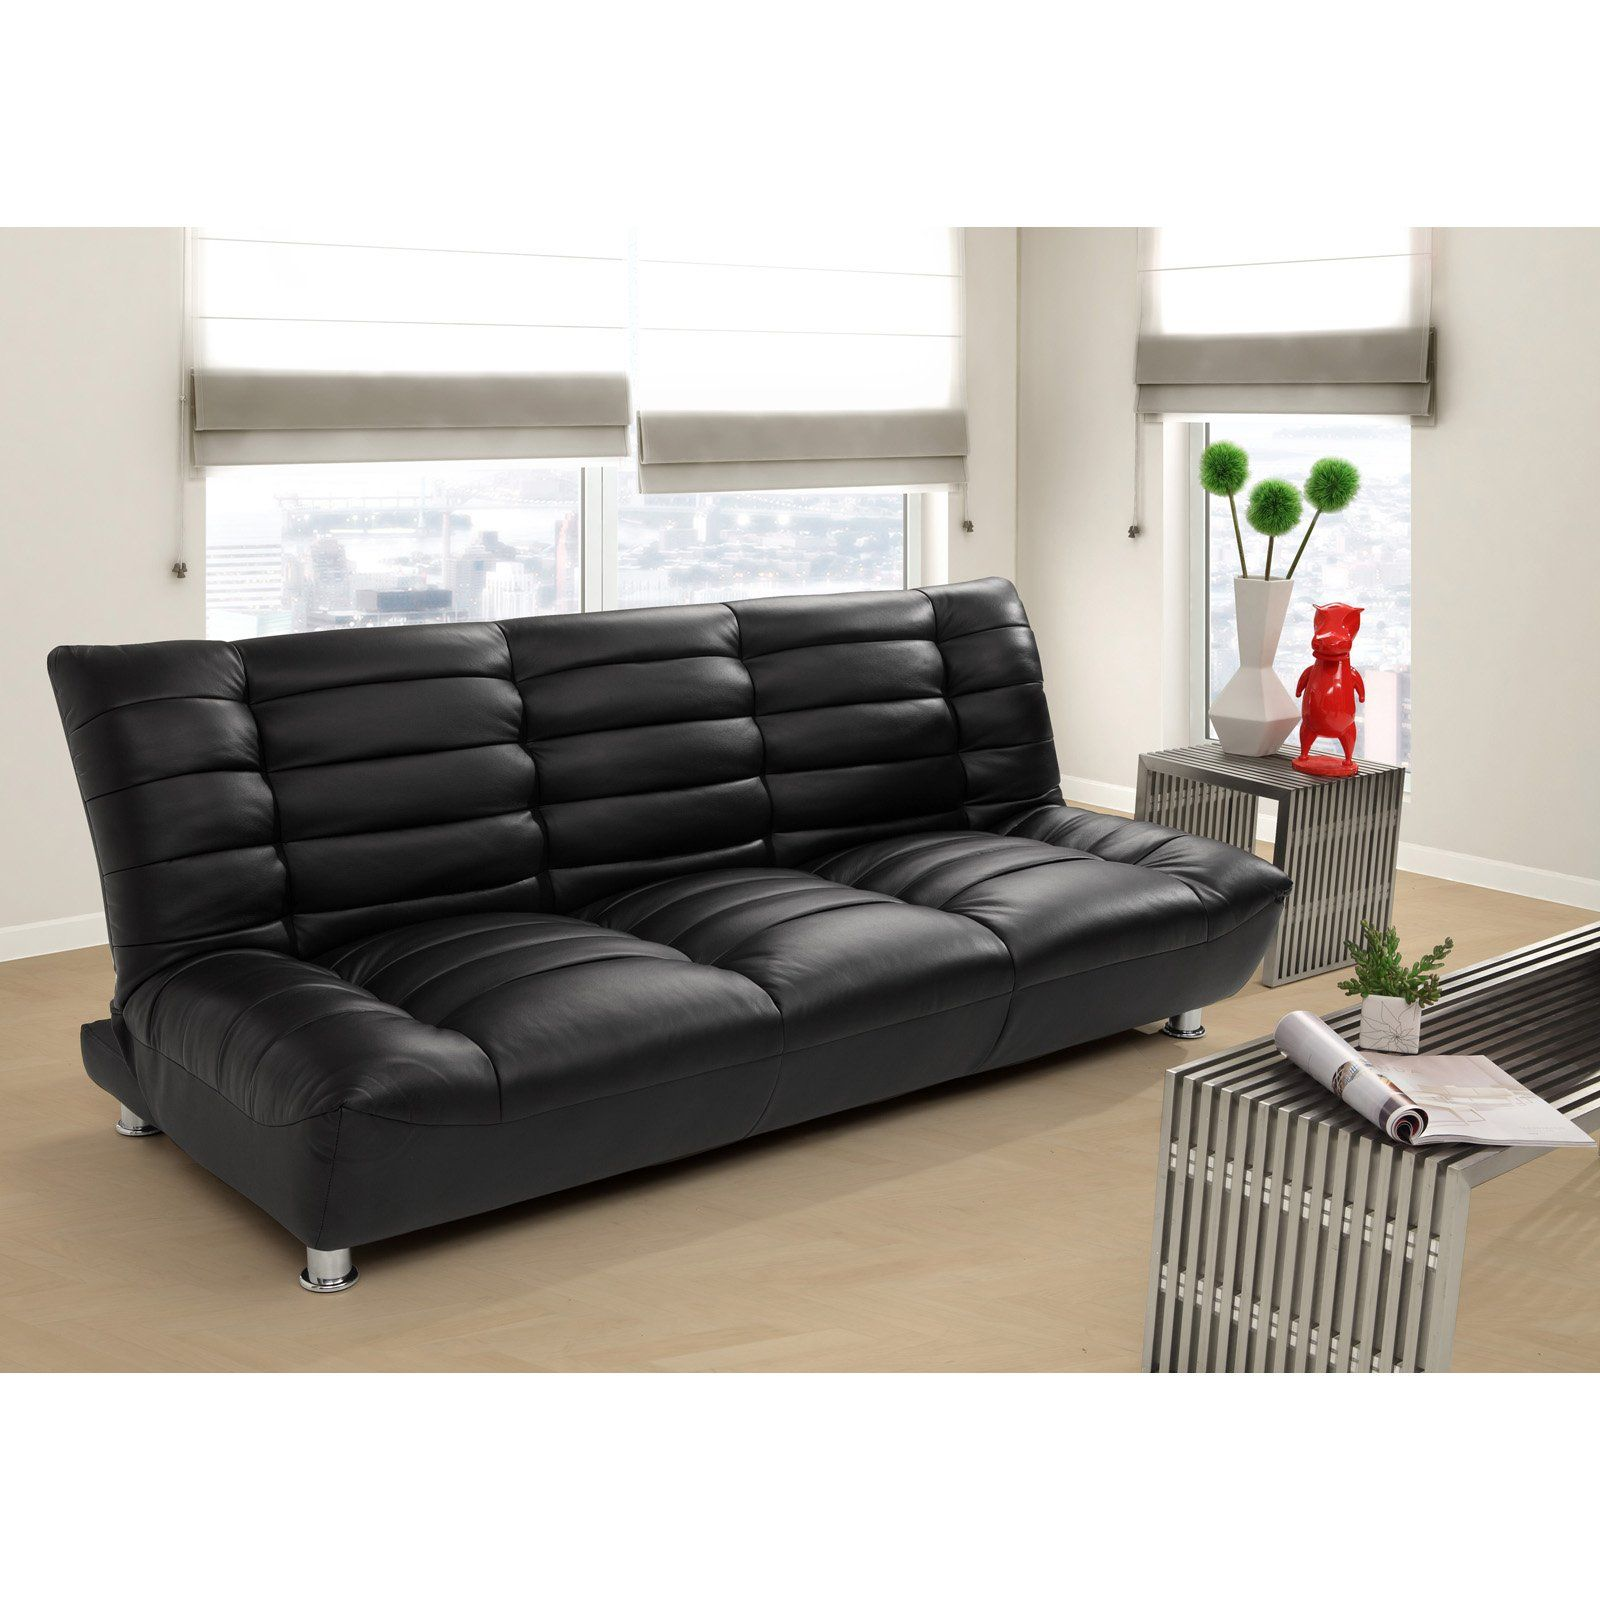 Astounding Have To Have It Zuo Modern Carnival Convertible Sofa Ibusinesslaw Wood Chair Design Ideas Ibusinesslaworg